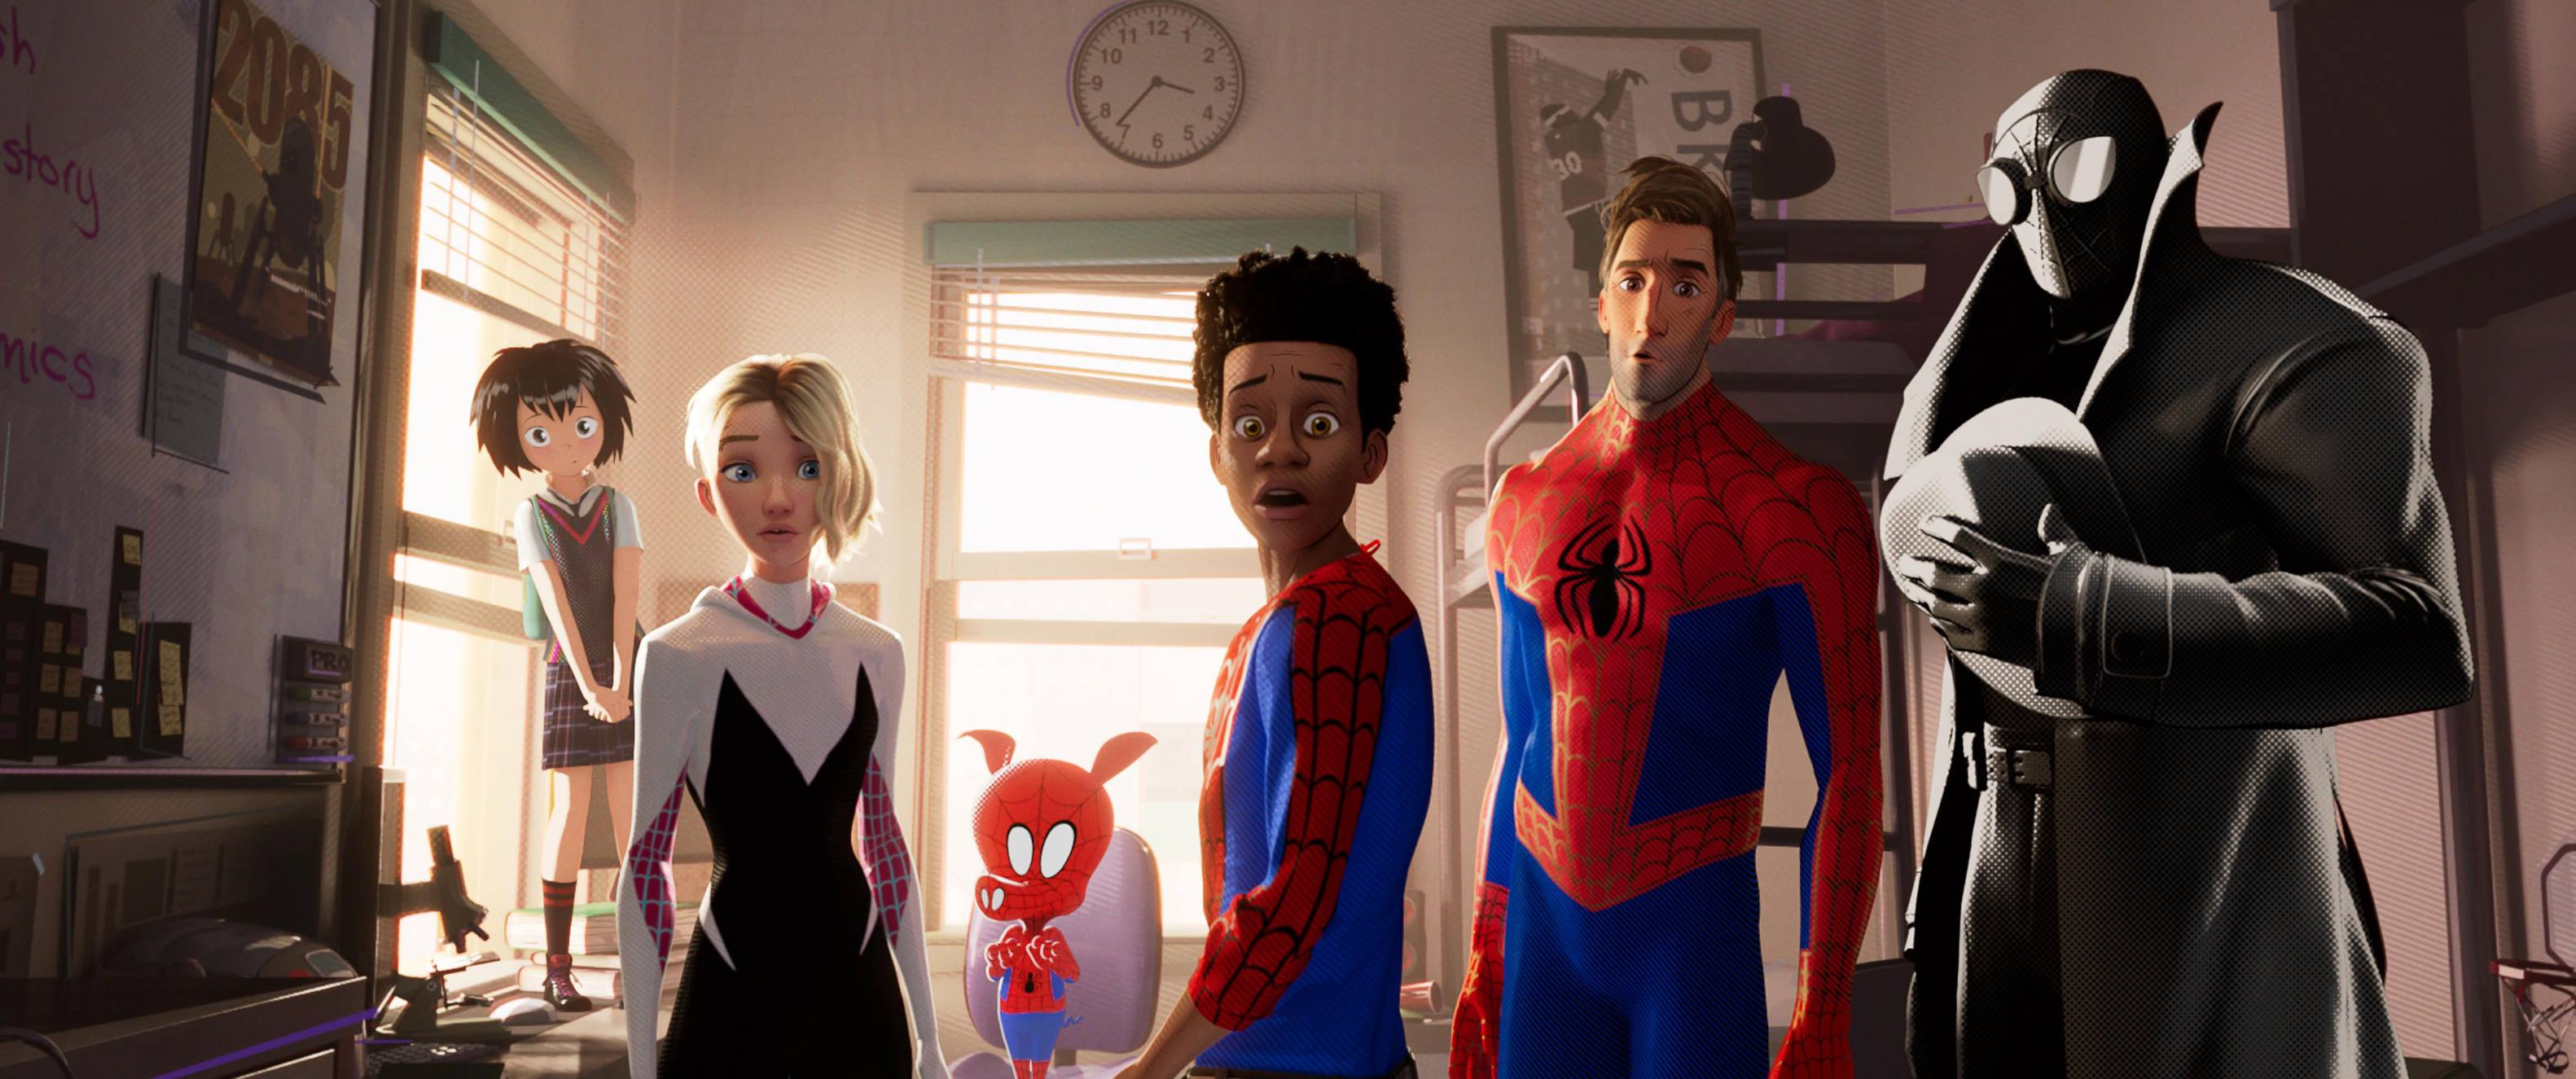 spider-man: into the spider-verse este un film complet nou, care combina animatia pe calculator cu desenele de mana si care arata cum nu s-a mai vazut in niciun film din trecut (video) Spider-Man: Into the Spider-Verse este un film complet nou, care combina animatia pe calculator cu desenele de mana si care arata cum nu s-a mai vazut in niciun film de animatie (VIDEO) Omul paianjen In lumea paianjenului 4